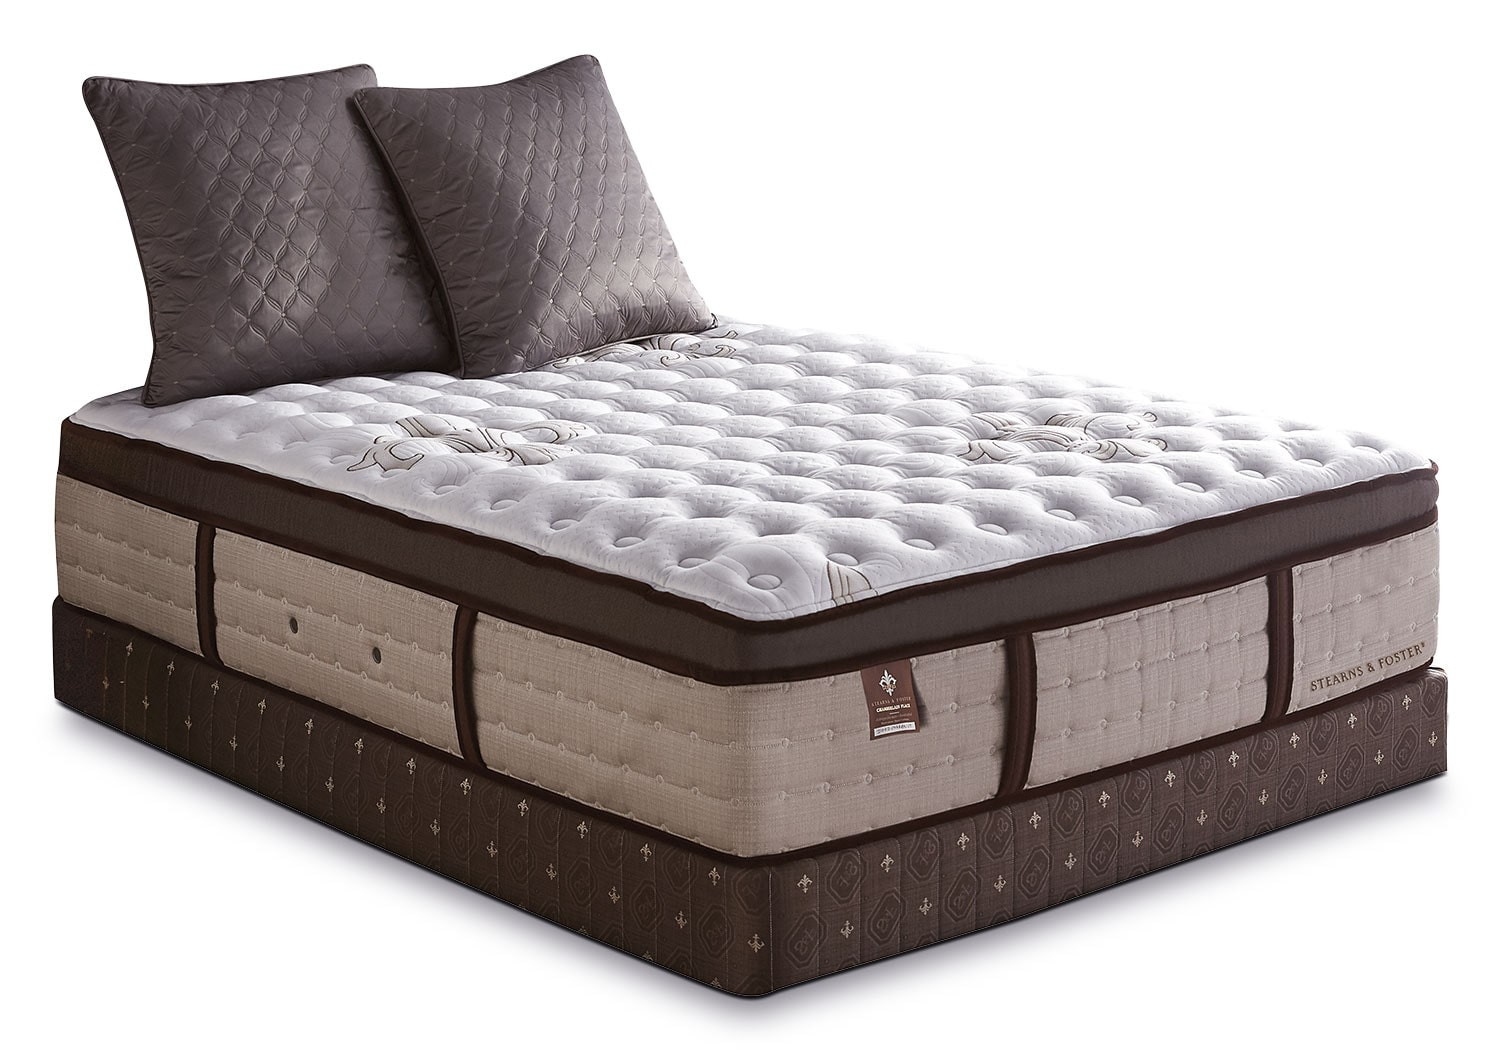 Stearns & Foster Chamberlain Place Euro-Top Plush Queen Mattress Set